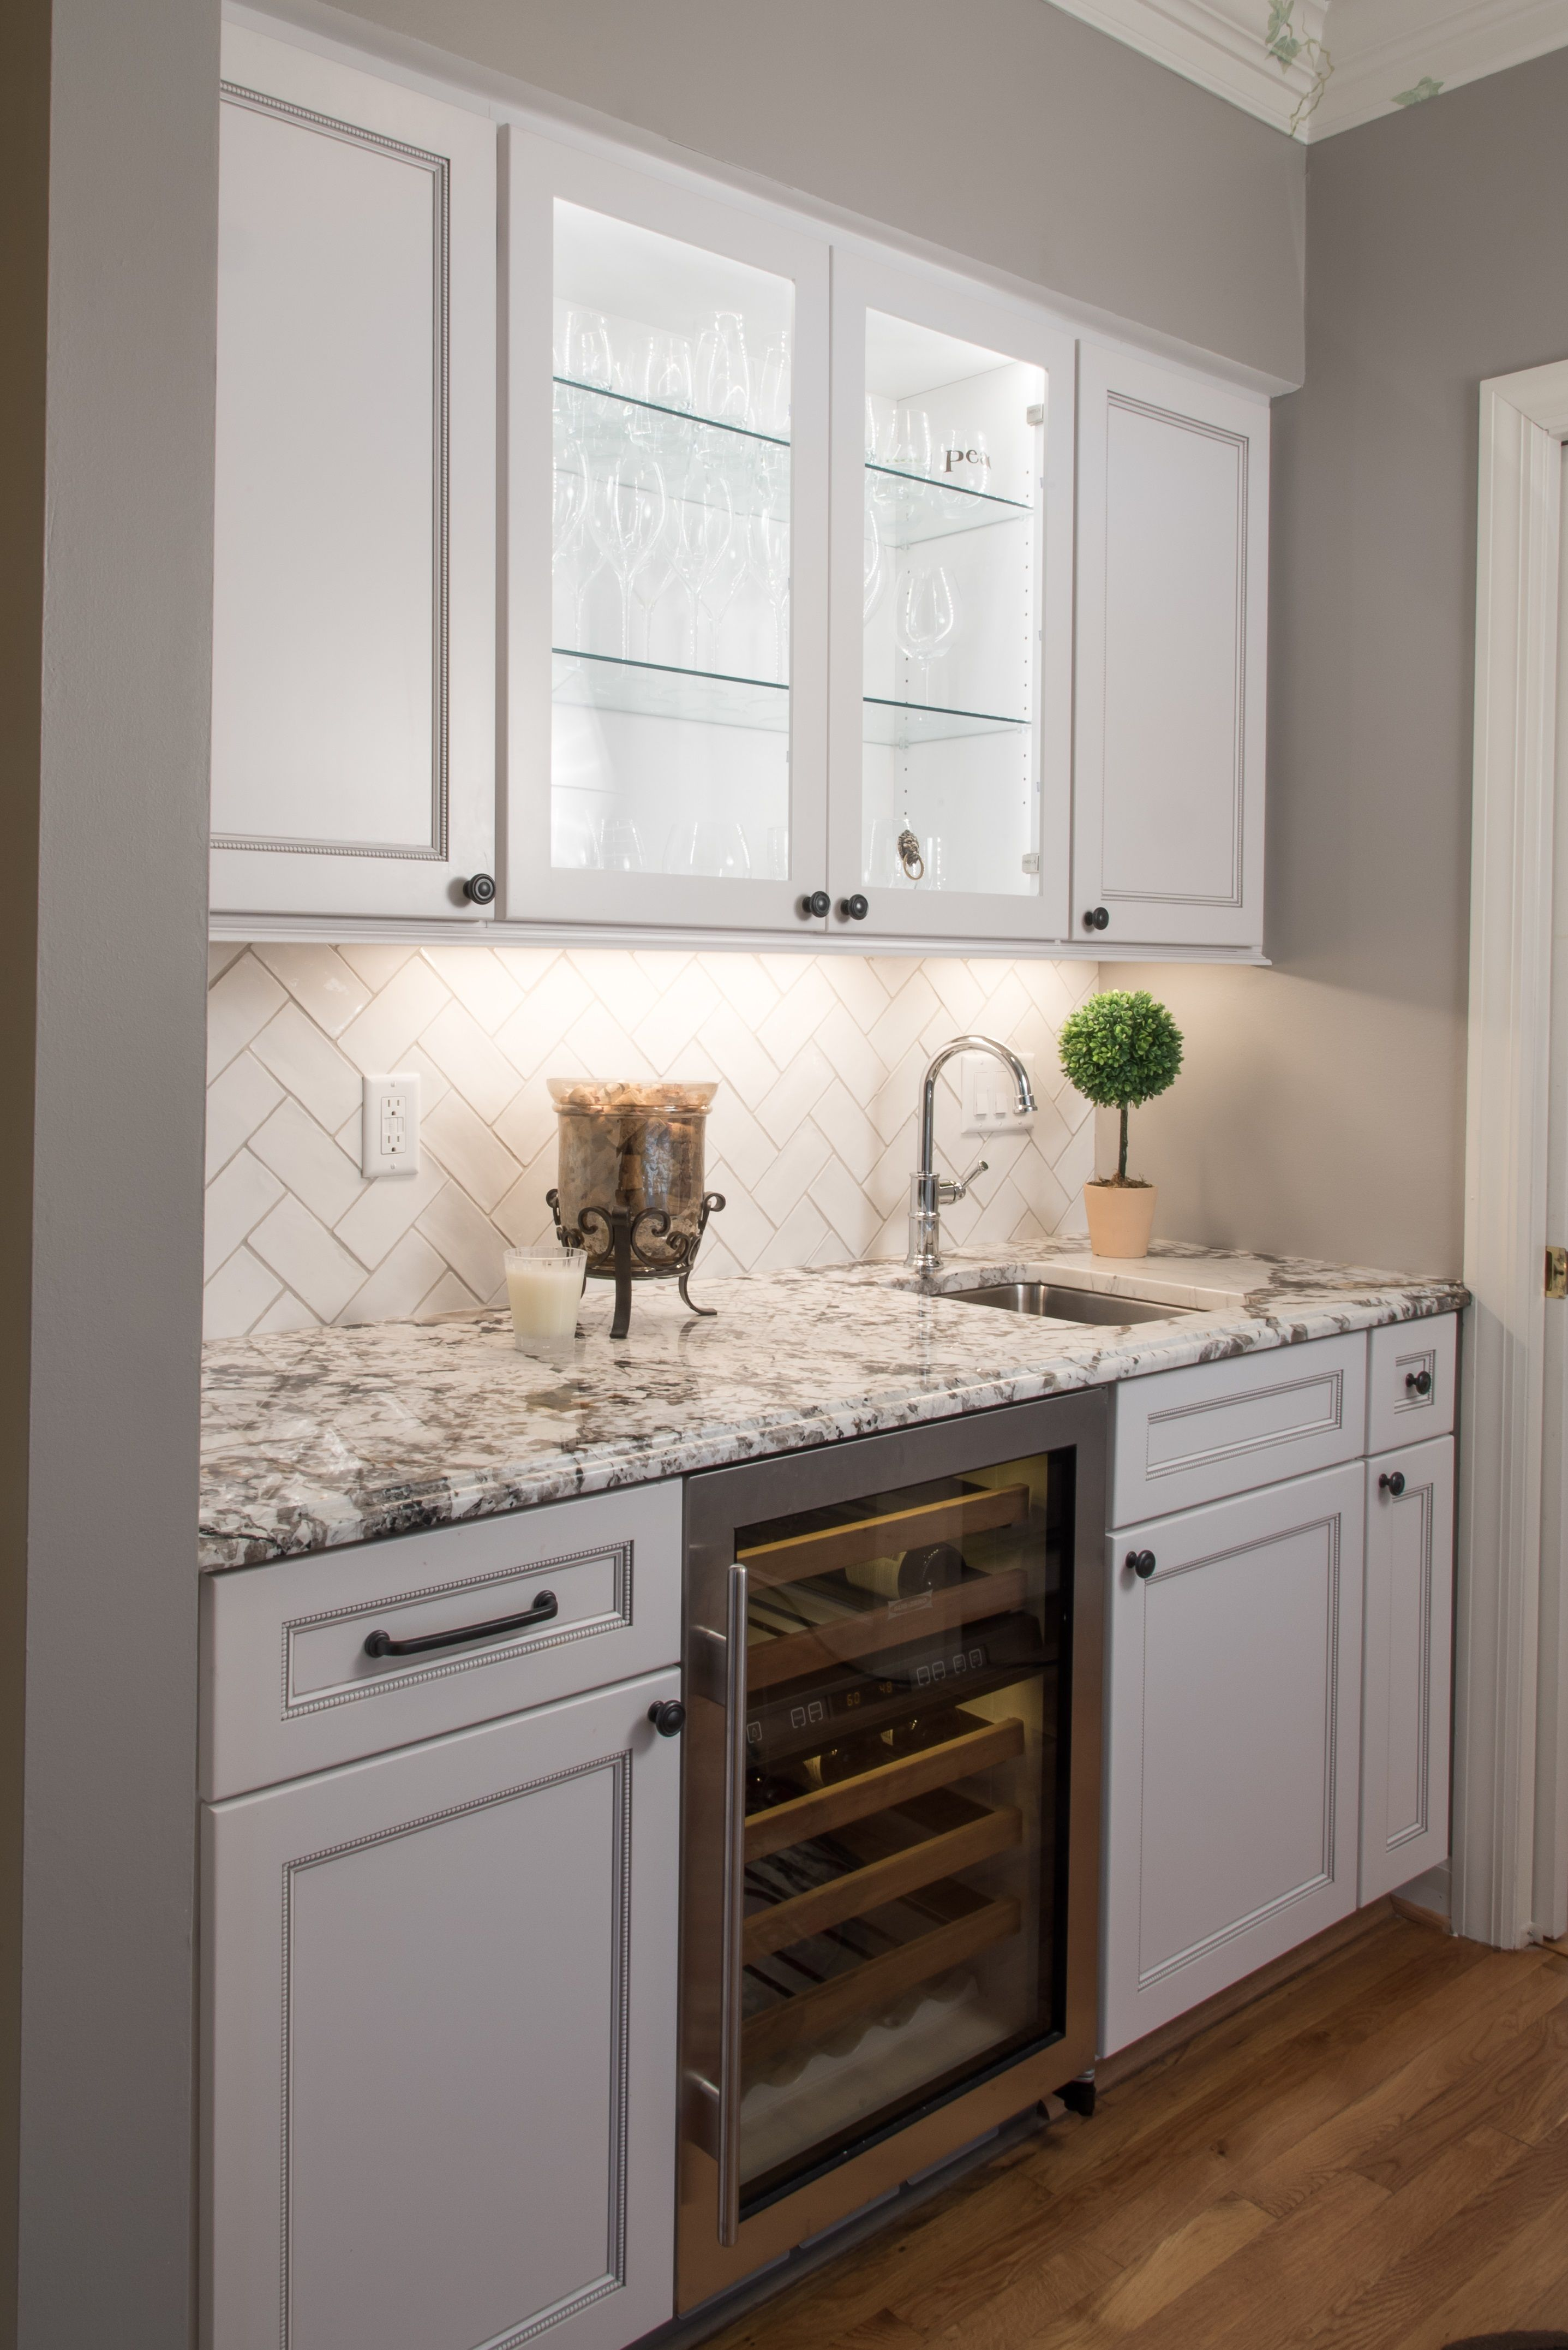 Add A Separate Area In Your Kitchen Just For Wine Check Out This Wine Station In The Bishop Ki Kitchen Inspiration Design Kitchen Remodel Kitchen Renovation